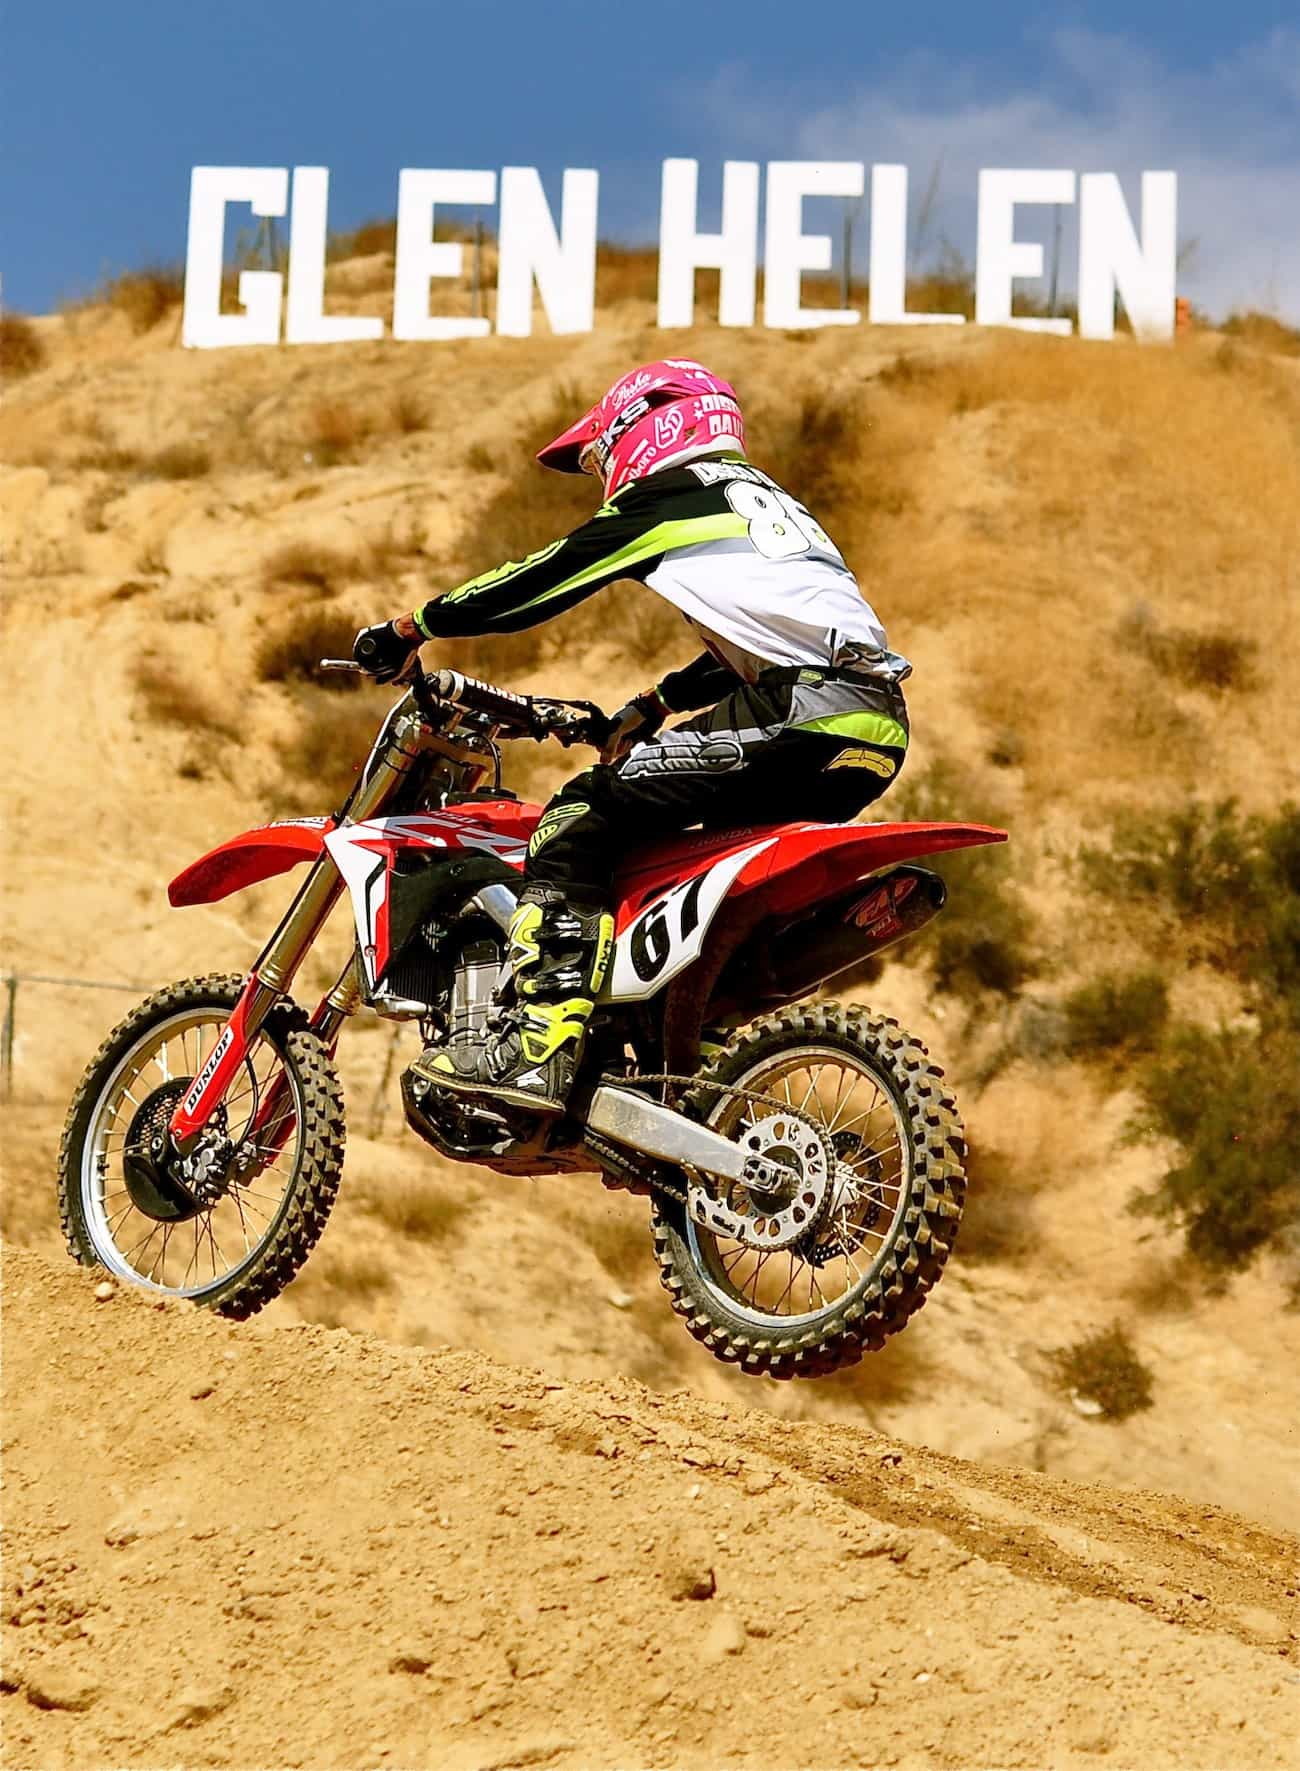 2018 honda 70. fine honda david cincotta was enlisted to race mxau0027s 2018 honda crf450 note that it  has an fmf singlesided exhaust on it in the first over40 expert moto  intended honda 70